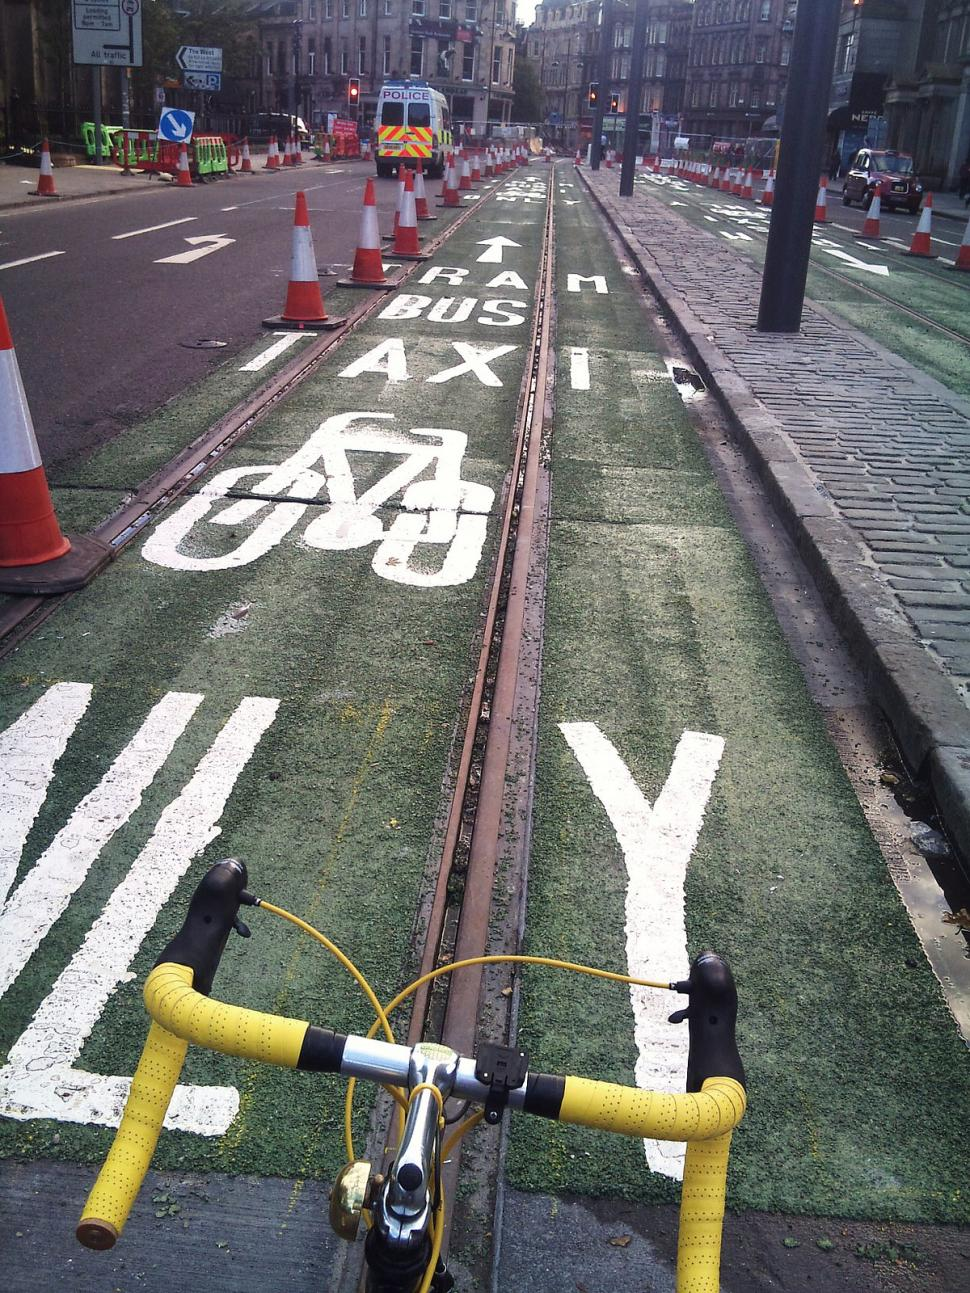 Princes Street cycle lane picture credit - Magnificent Octopus Flickr_Creative Commons